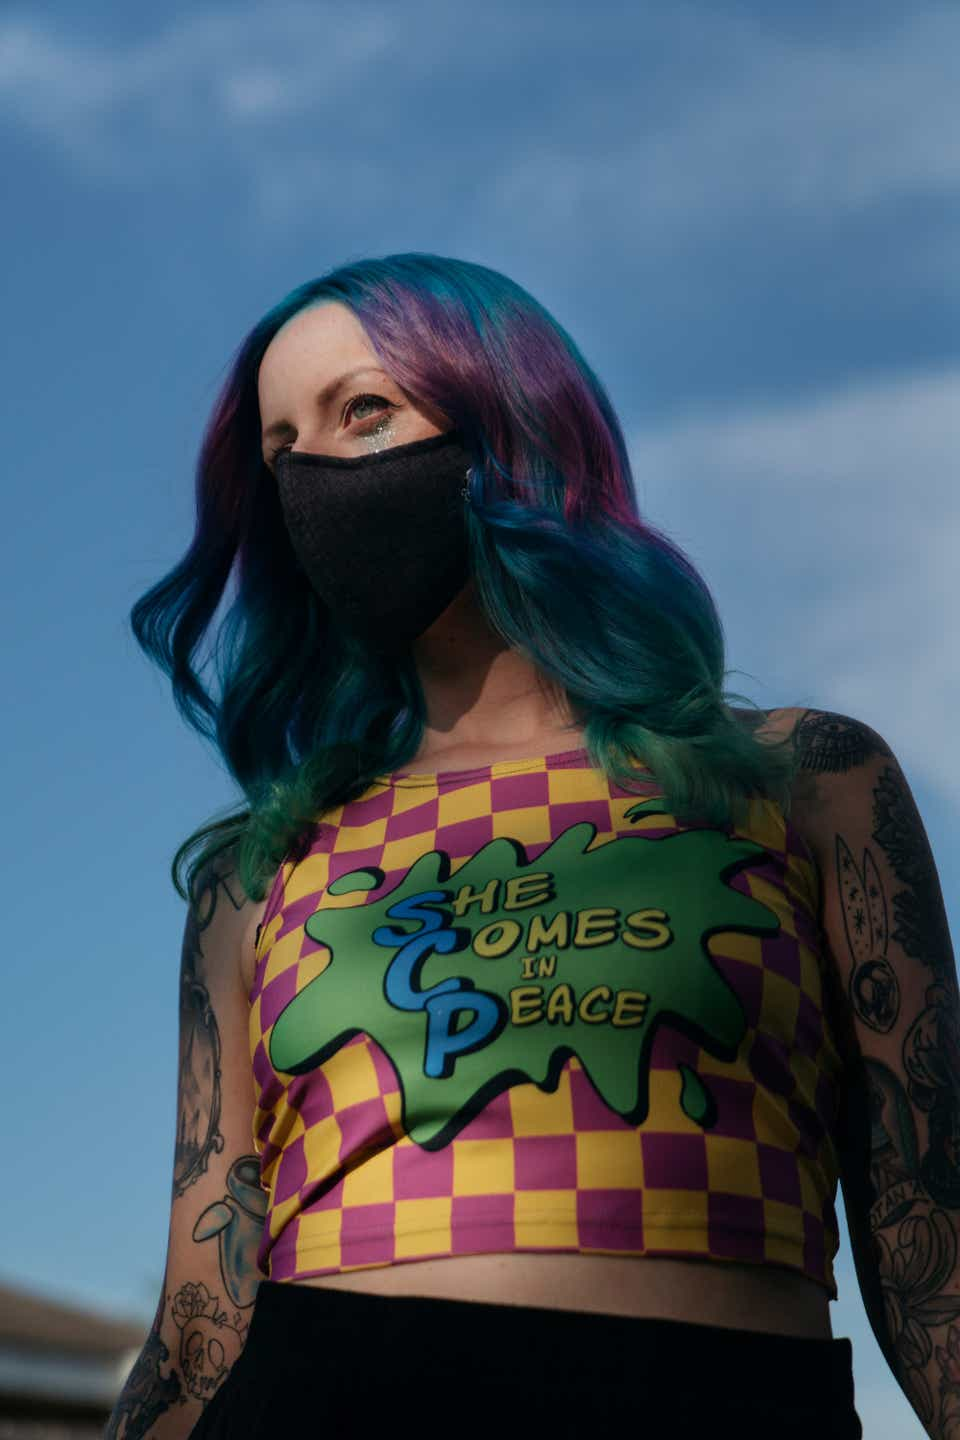 """This is a close-up image of Maddie, who is wearing a pink-and-yellow patterned crop top that says """"She comes in peace"""" on it in yellow and blue font on a green background. She has on a black mask and her hair is colored teal and purple."""